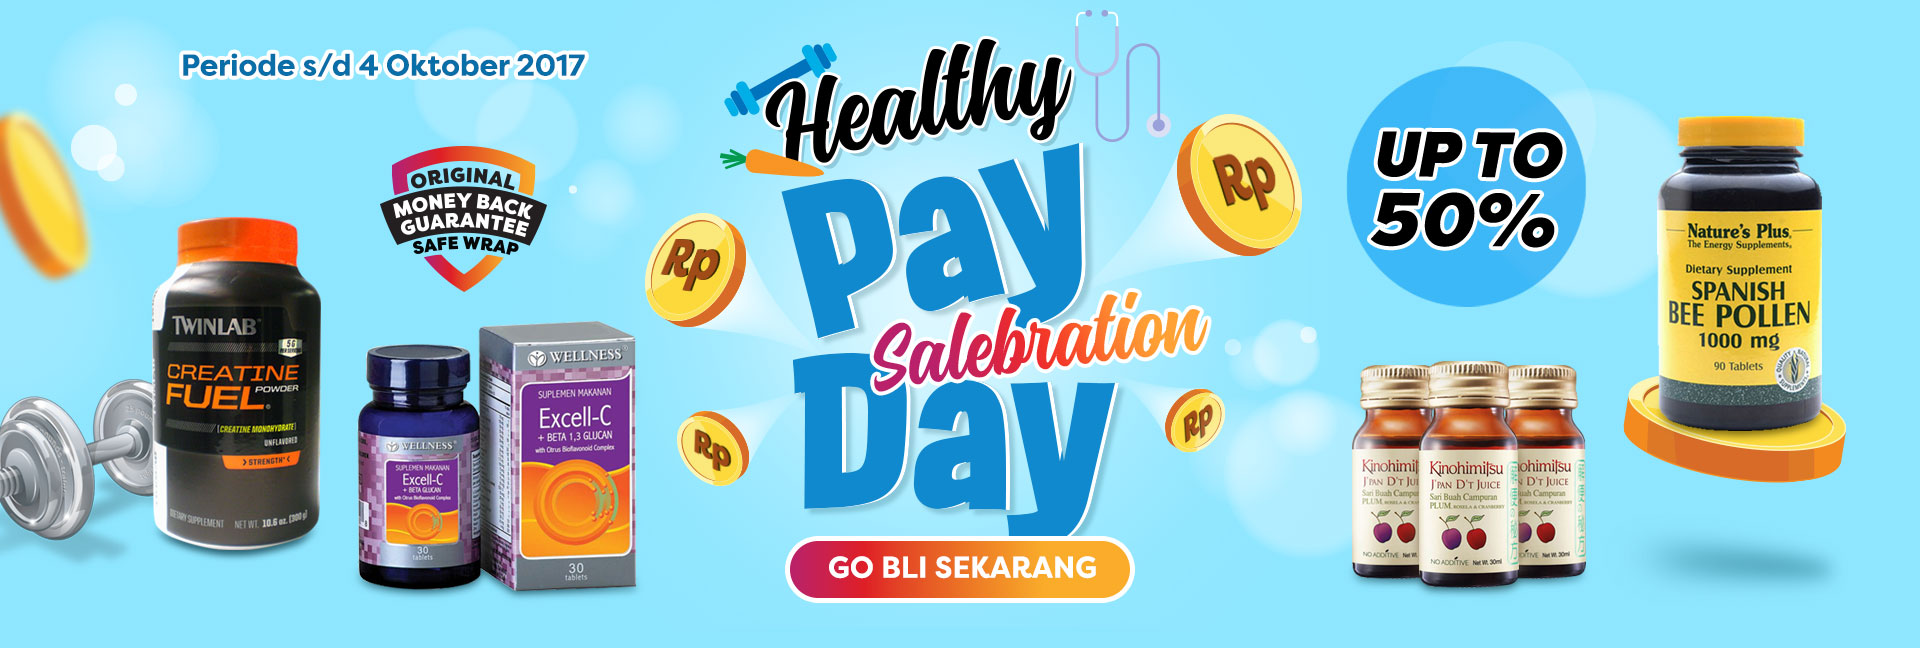 Healthypay day salebration